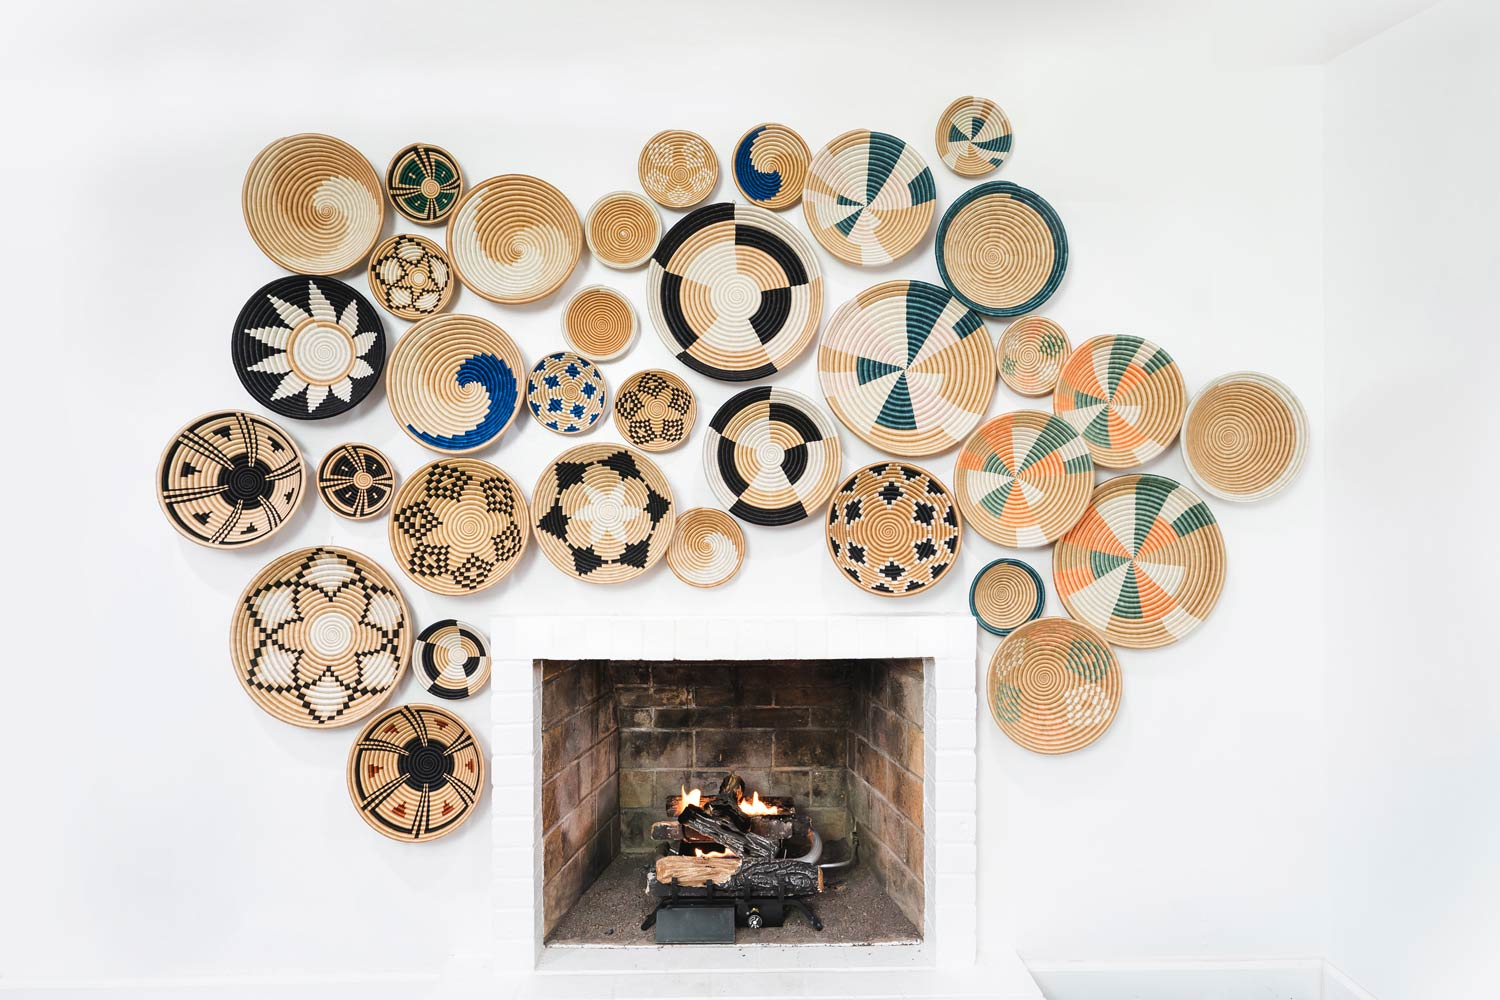 Large display of Local and Lejos bowls on a white wall above a fireplace.